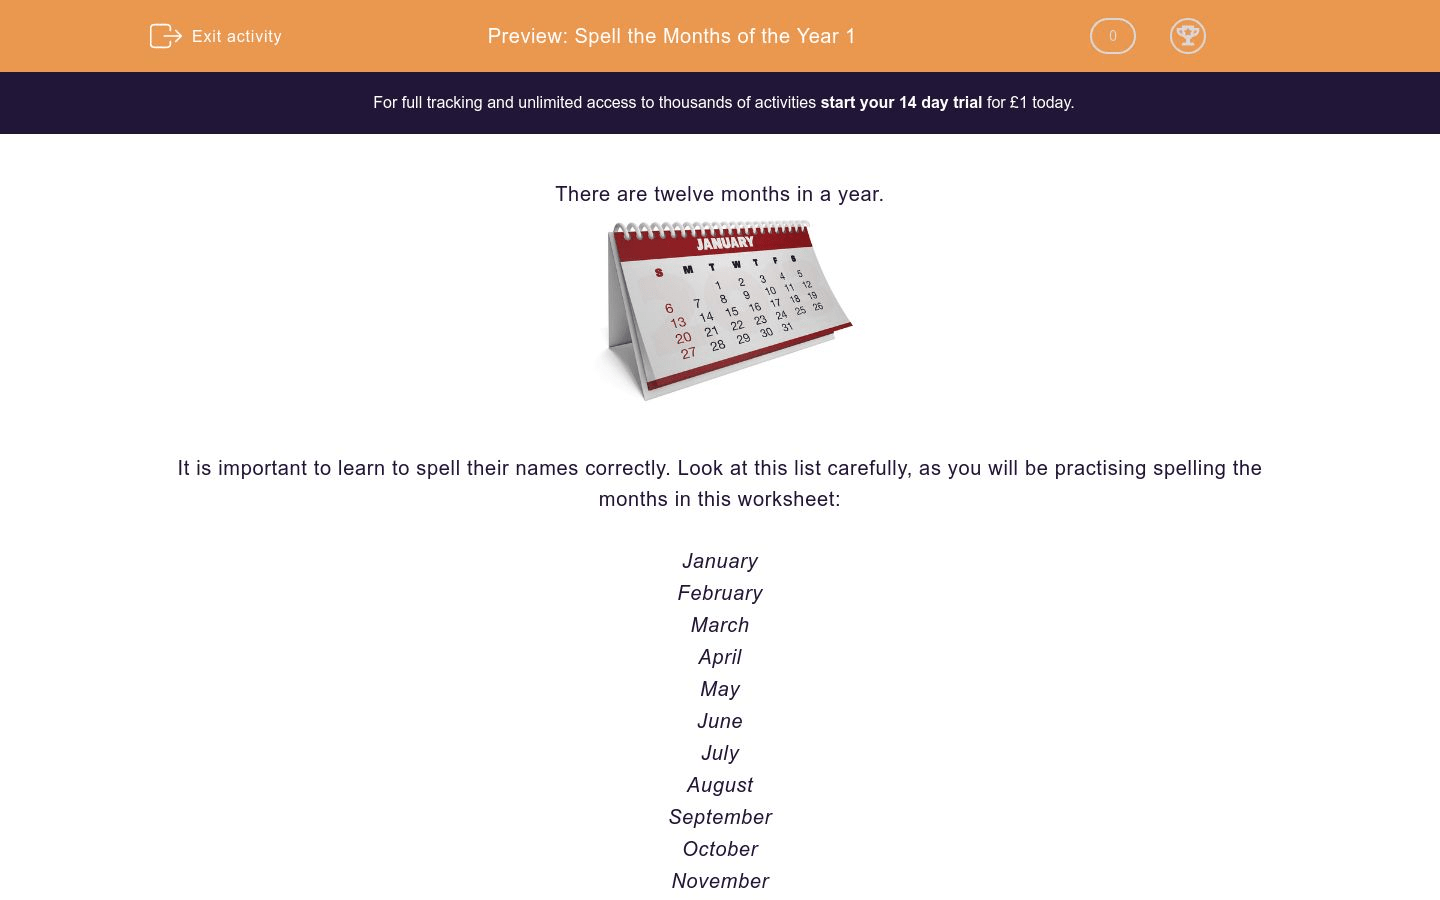 Spell The Months Of The Year 1 Worksheet